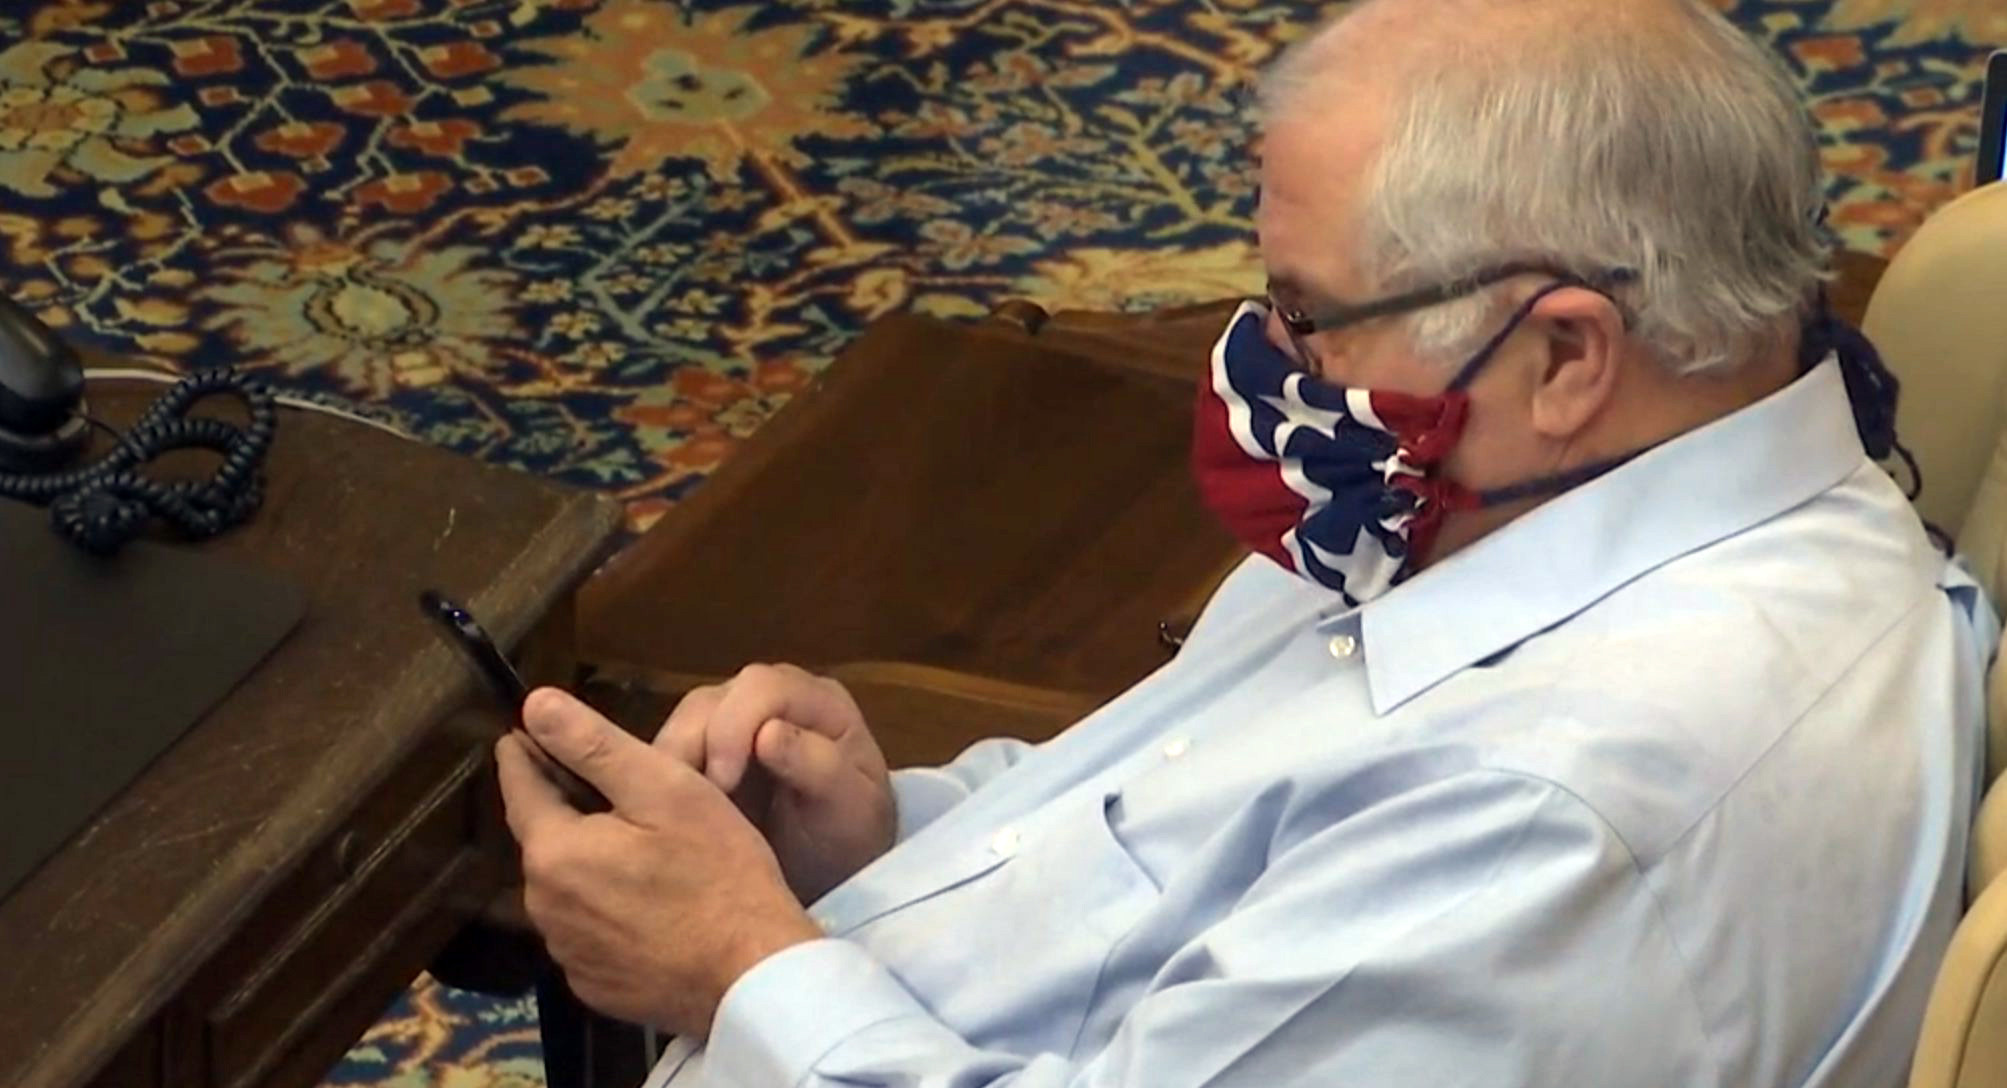 Michigan lawmaker apologizes for face mask resembling Confederate flag: 'I did not intend to offend anyone'